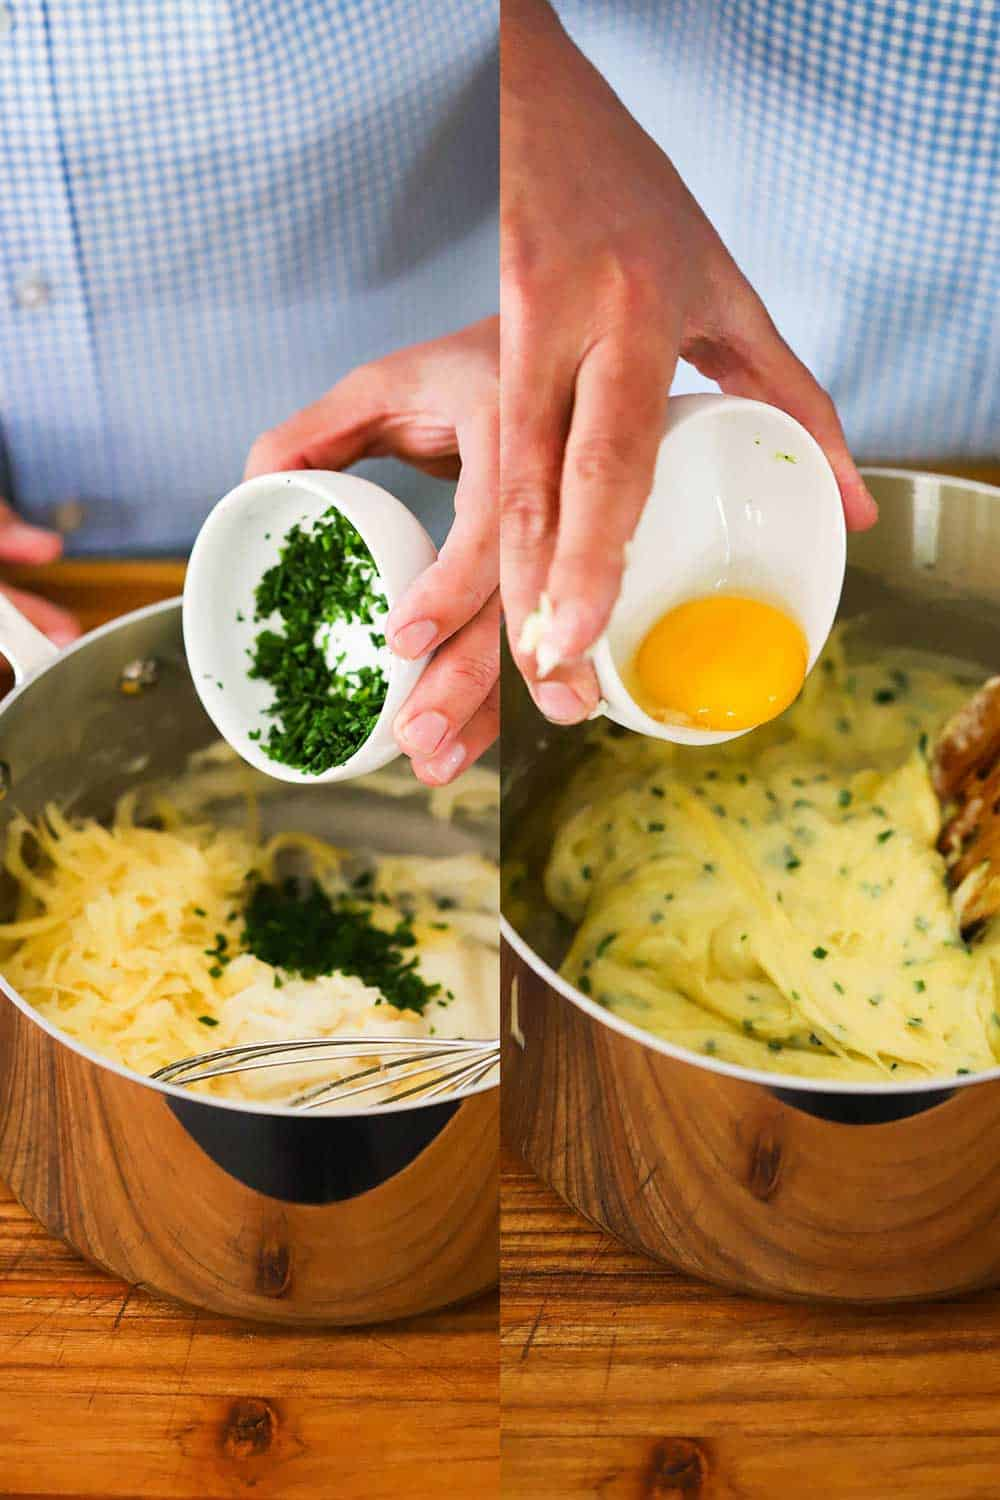 2 side by side images with the one on the left being a hand dumping a small bowl of chives into a pan filled with a souffle mixture and the one on the right of a hand lowering an egg yolk into the same pan.